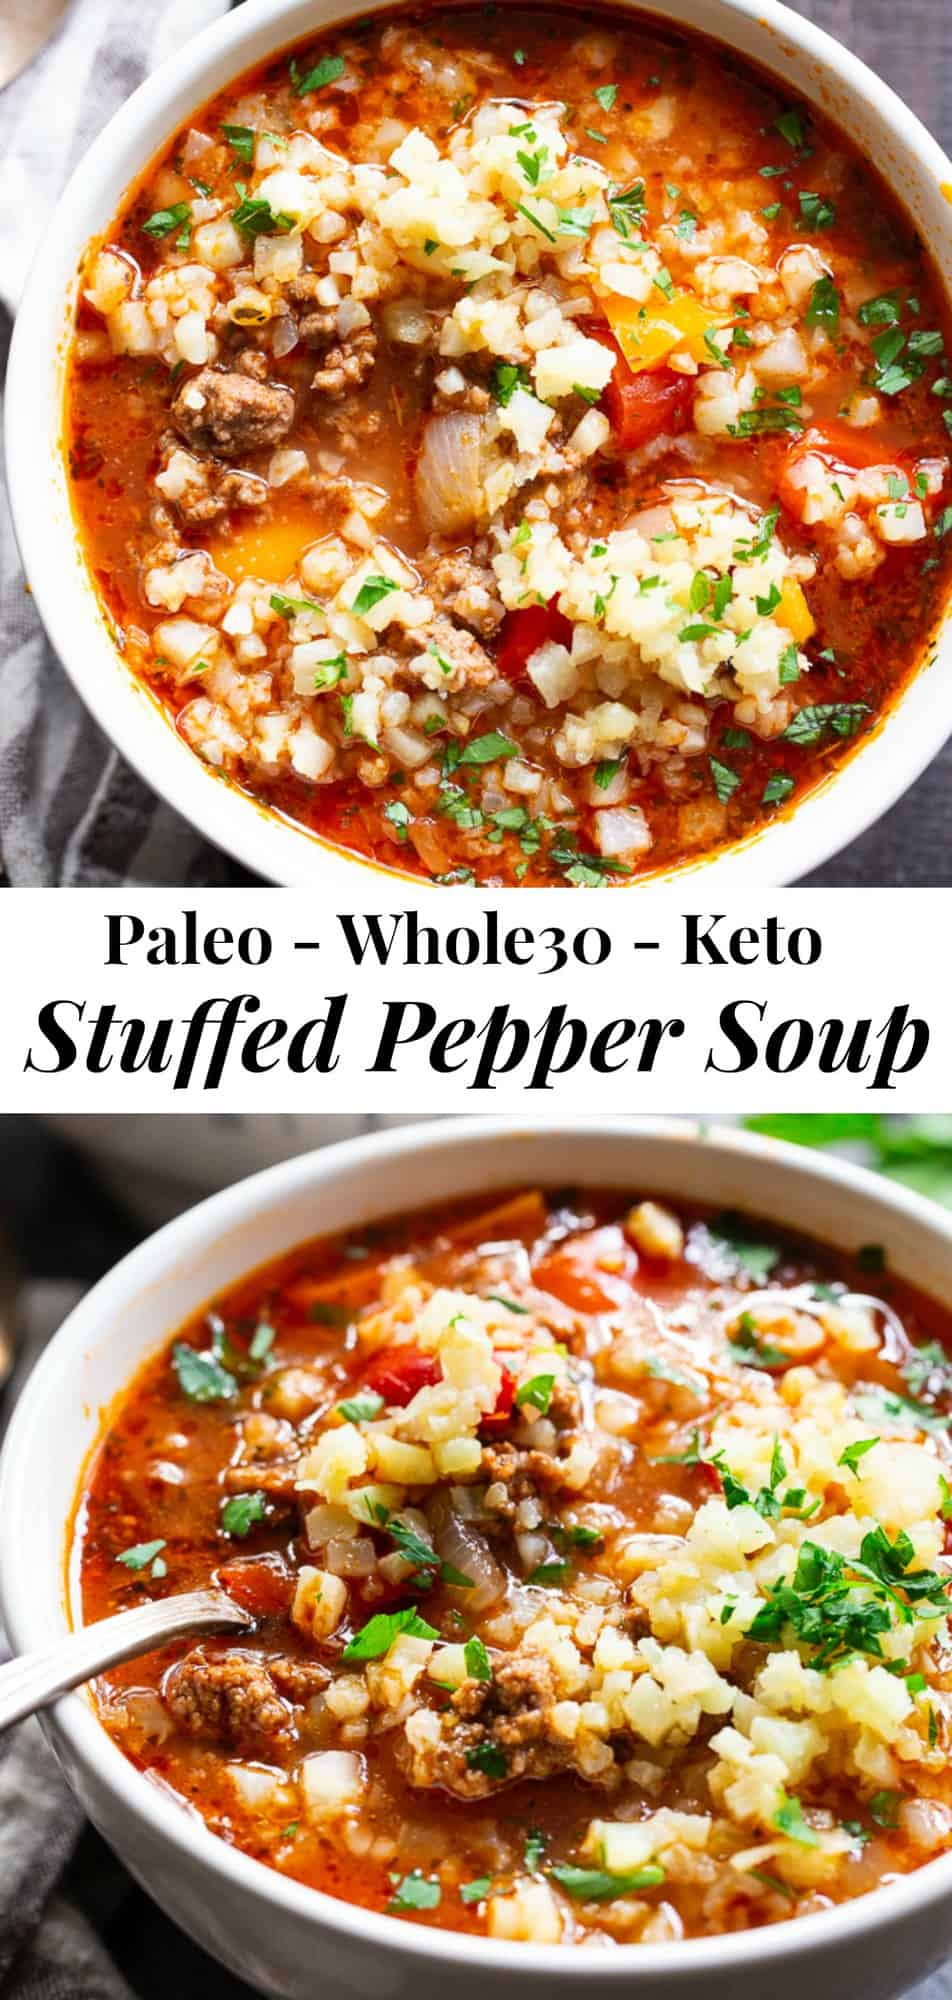 "This stuffed pepper soup is loaded with everything you're craving!  Italian spices, savory ground beef, garlic and onions, bell peppers, and cauliflower ""rice"" make this a hearty soup that's also super healthy for you.  Perfect for an easy dinner anytime!  Made in the instant pot or on stovetop.  Gluten-free, dairy-free, keto and Whole30 friendly. #paleo #keto #whole30"